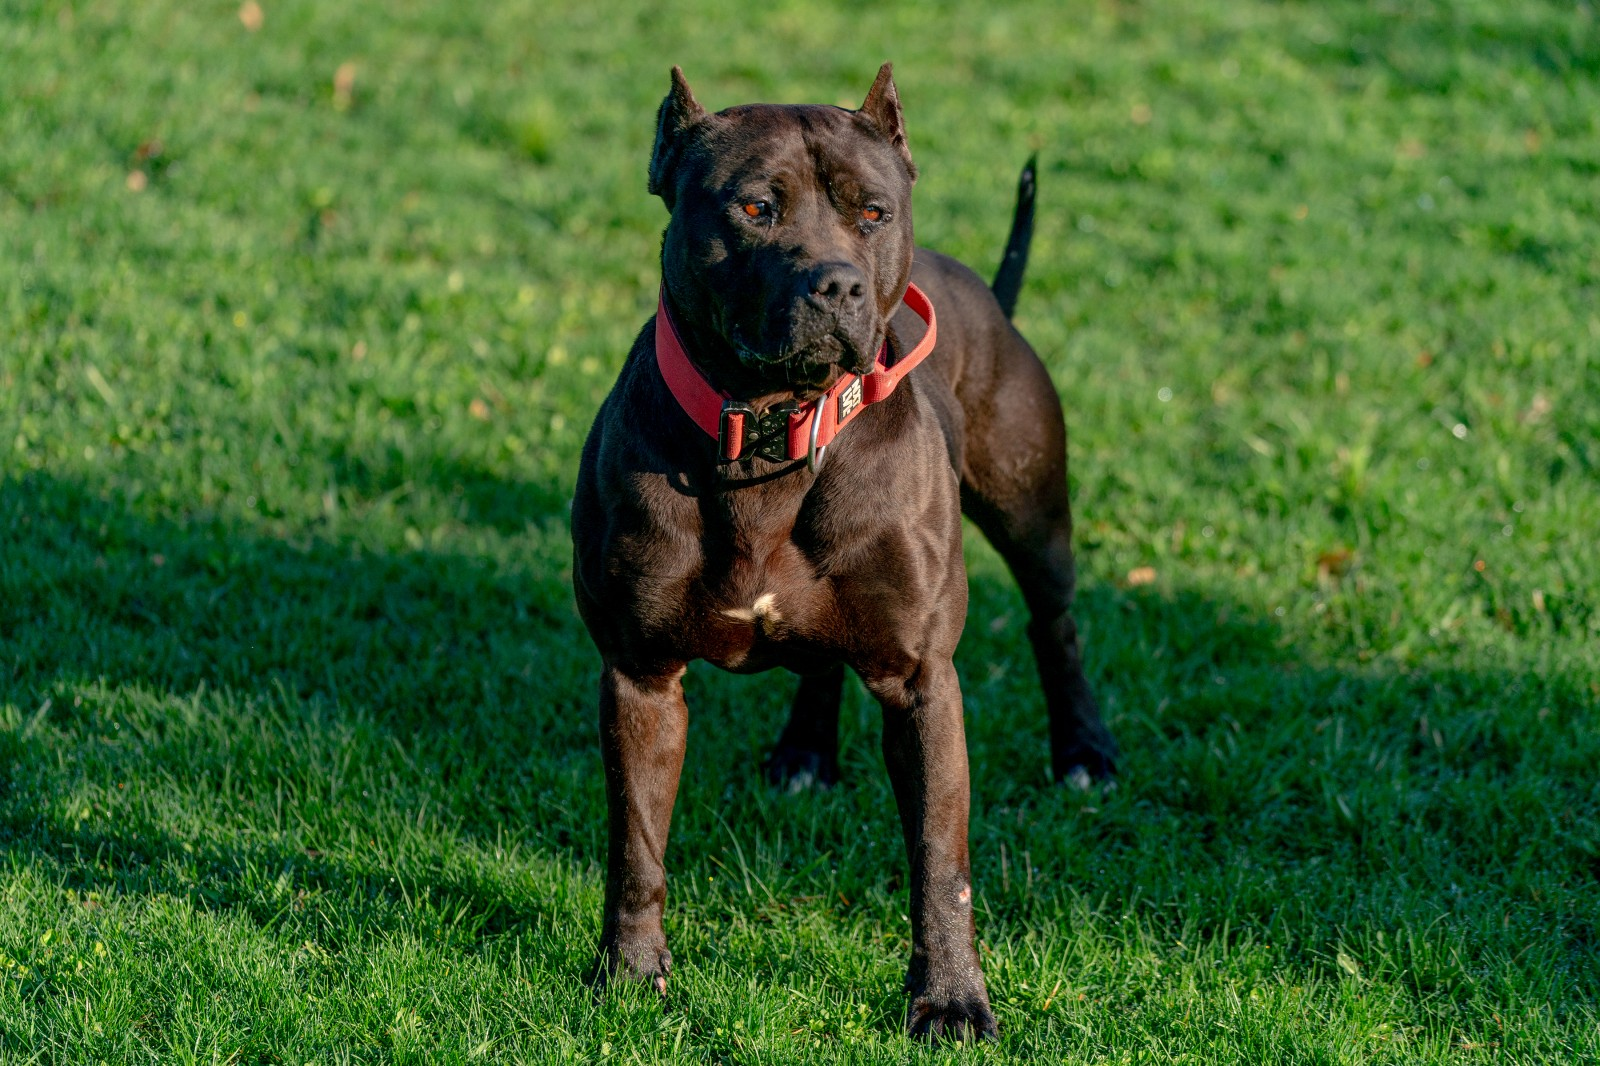 Unleashed Kennelz Black Stud, XL pit bull Batman, stands at attention wearing a red collar.